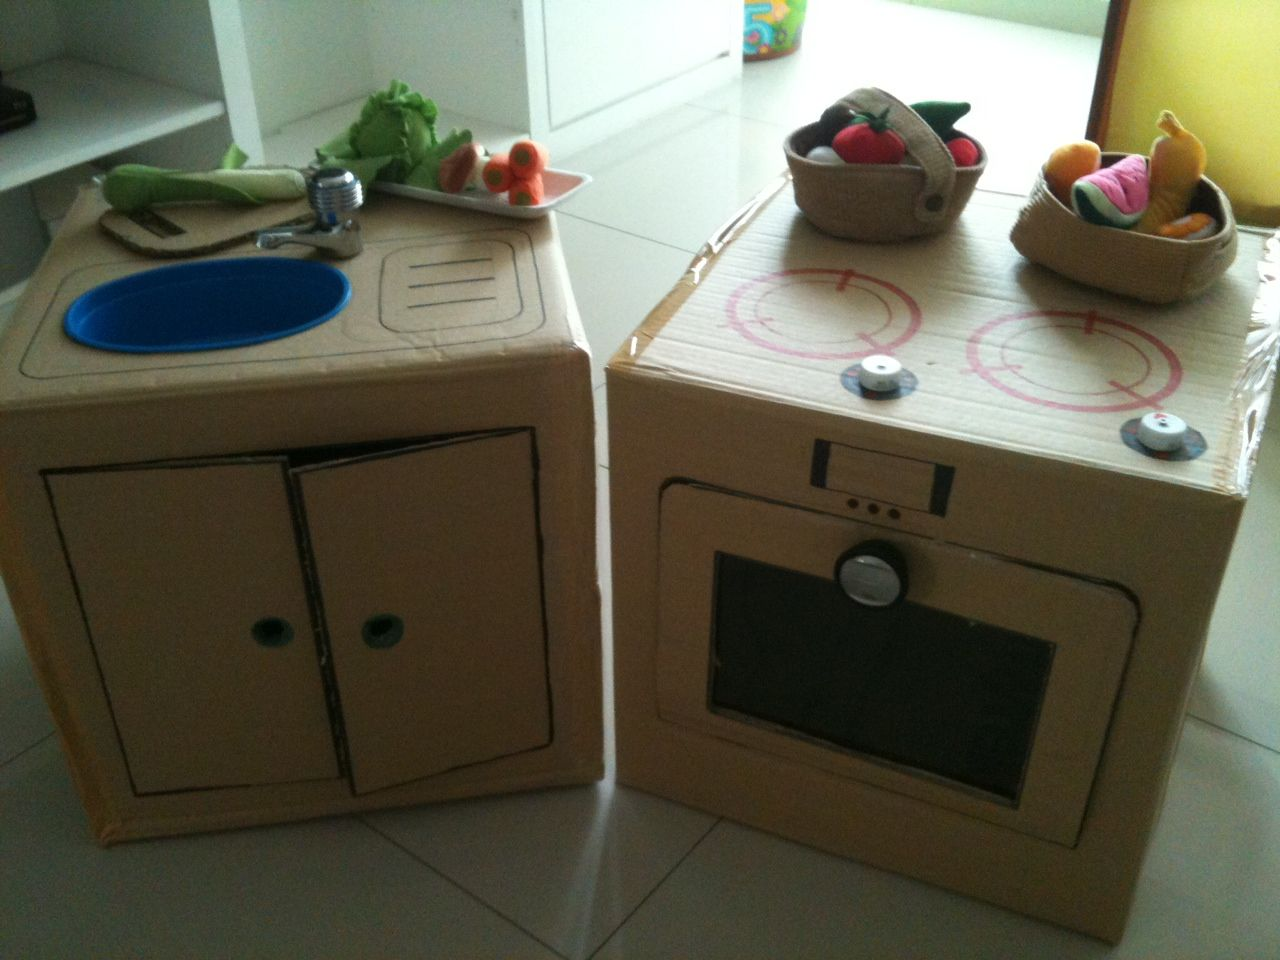 Diy Cardboard Kitchen Sink Stove And Oven For My Daughter